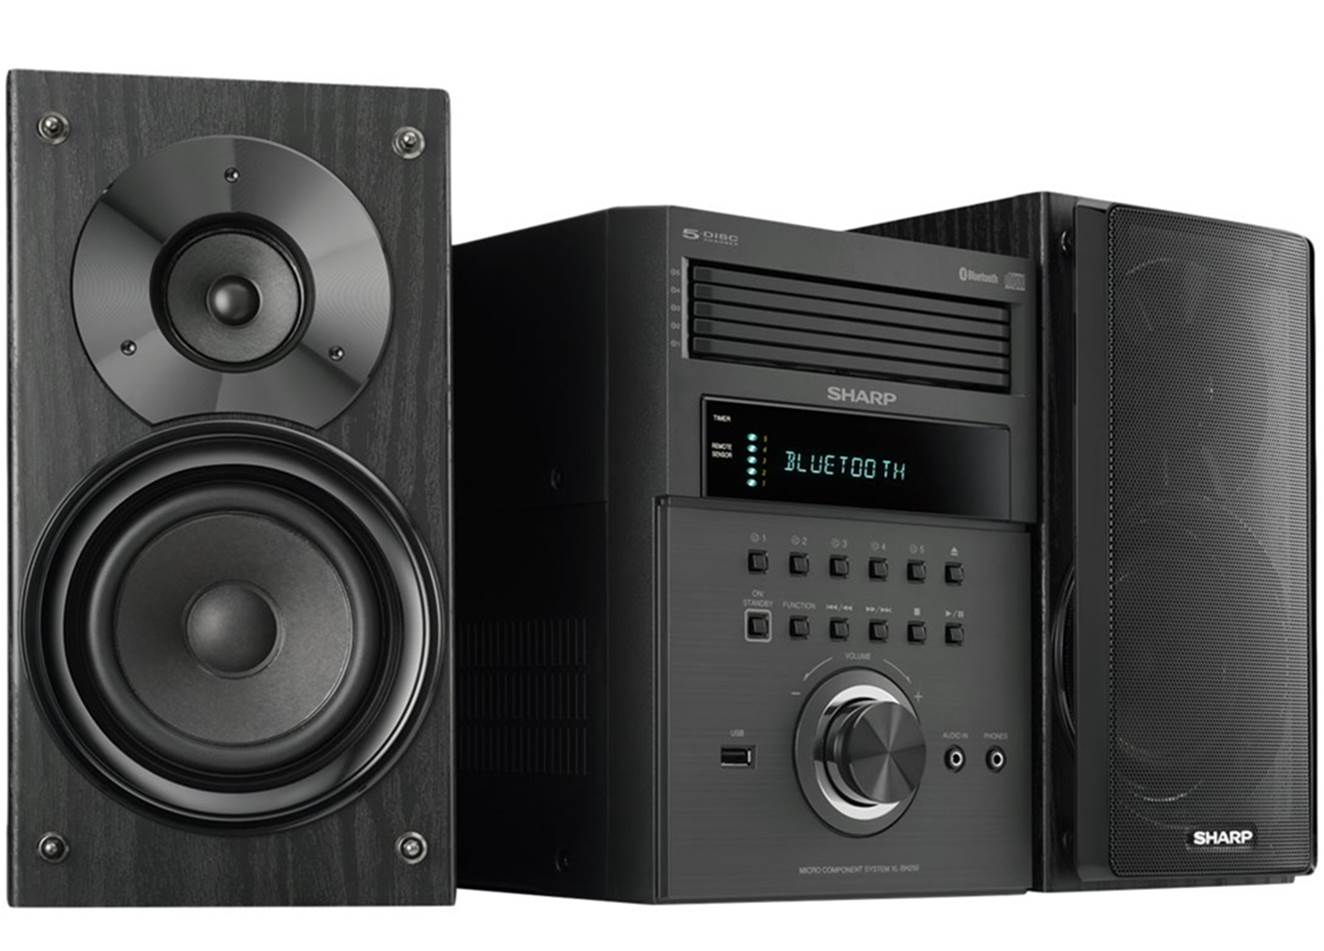 Top 10 Home Stereo Systems In 2020 Bass Head Speakers